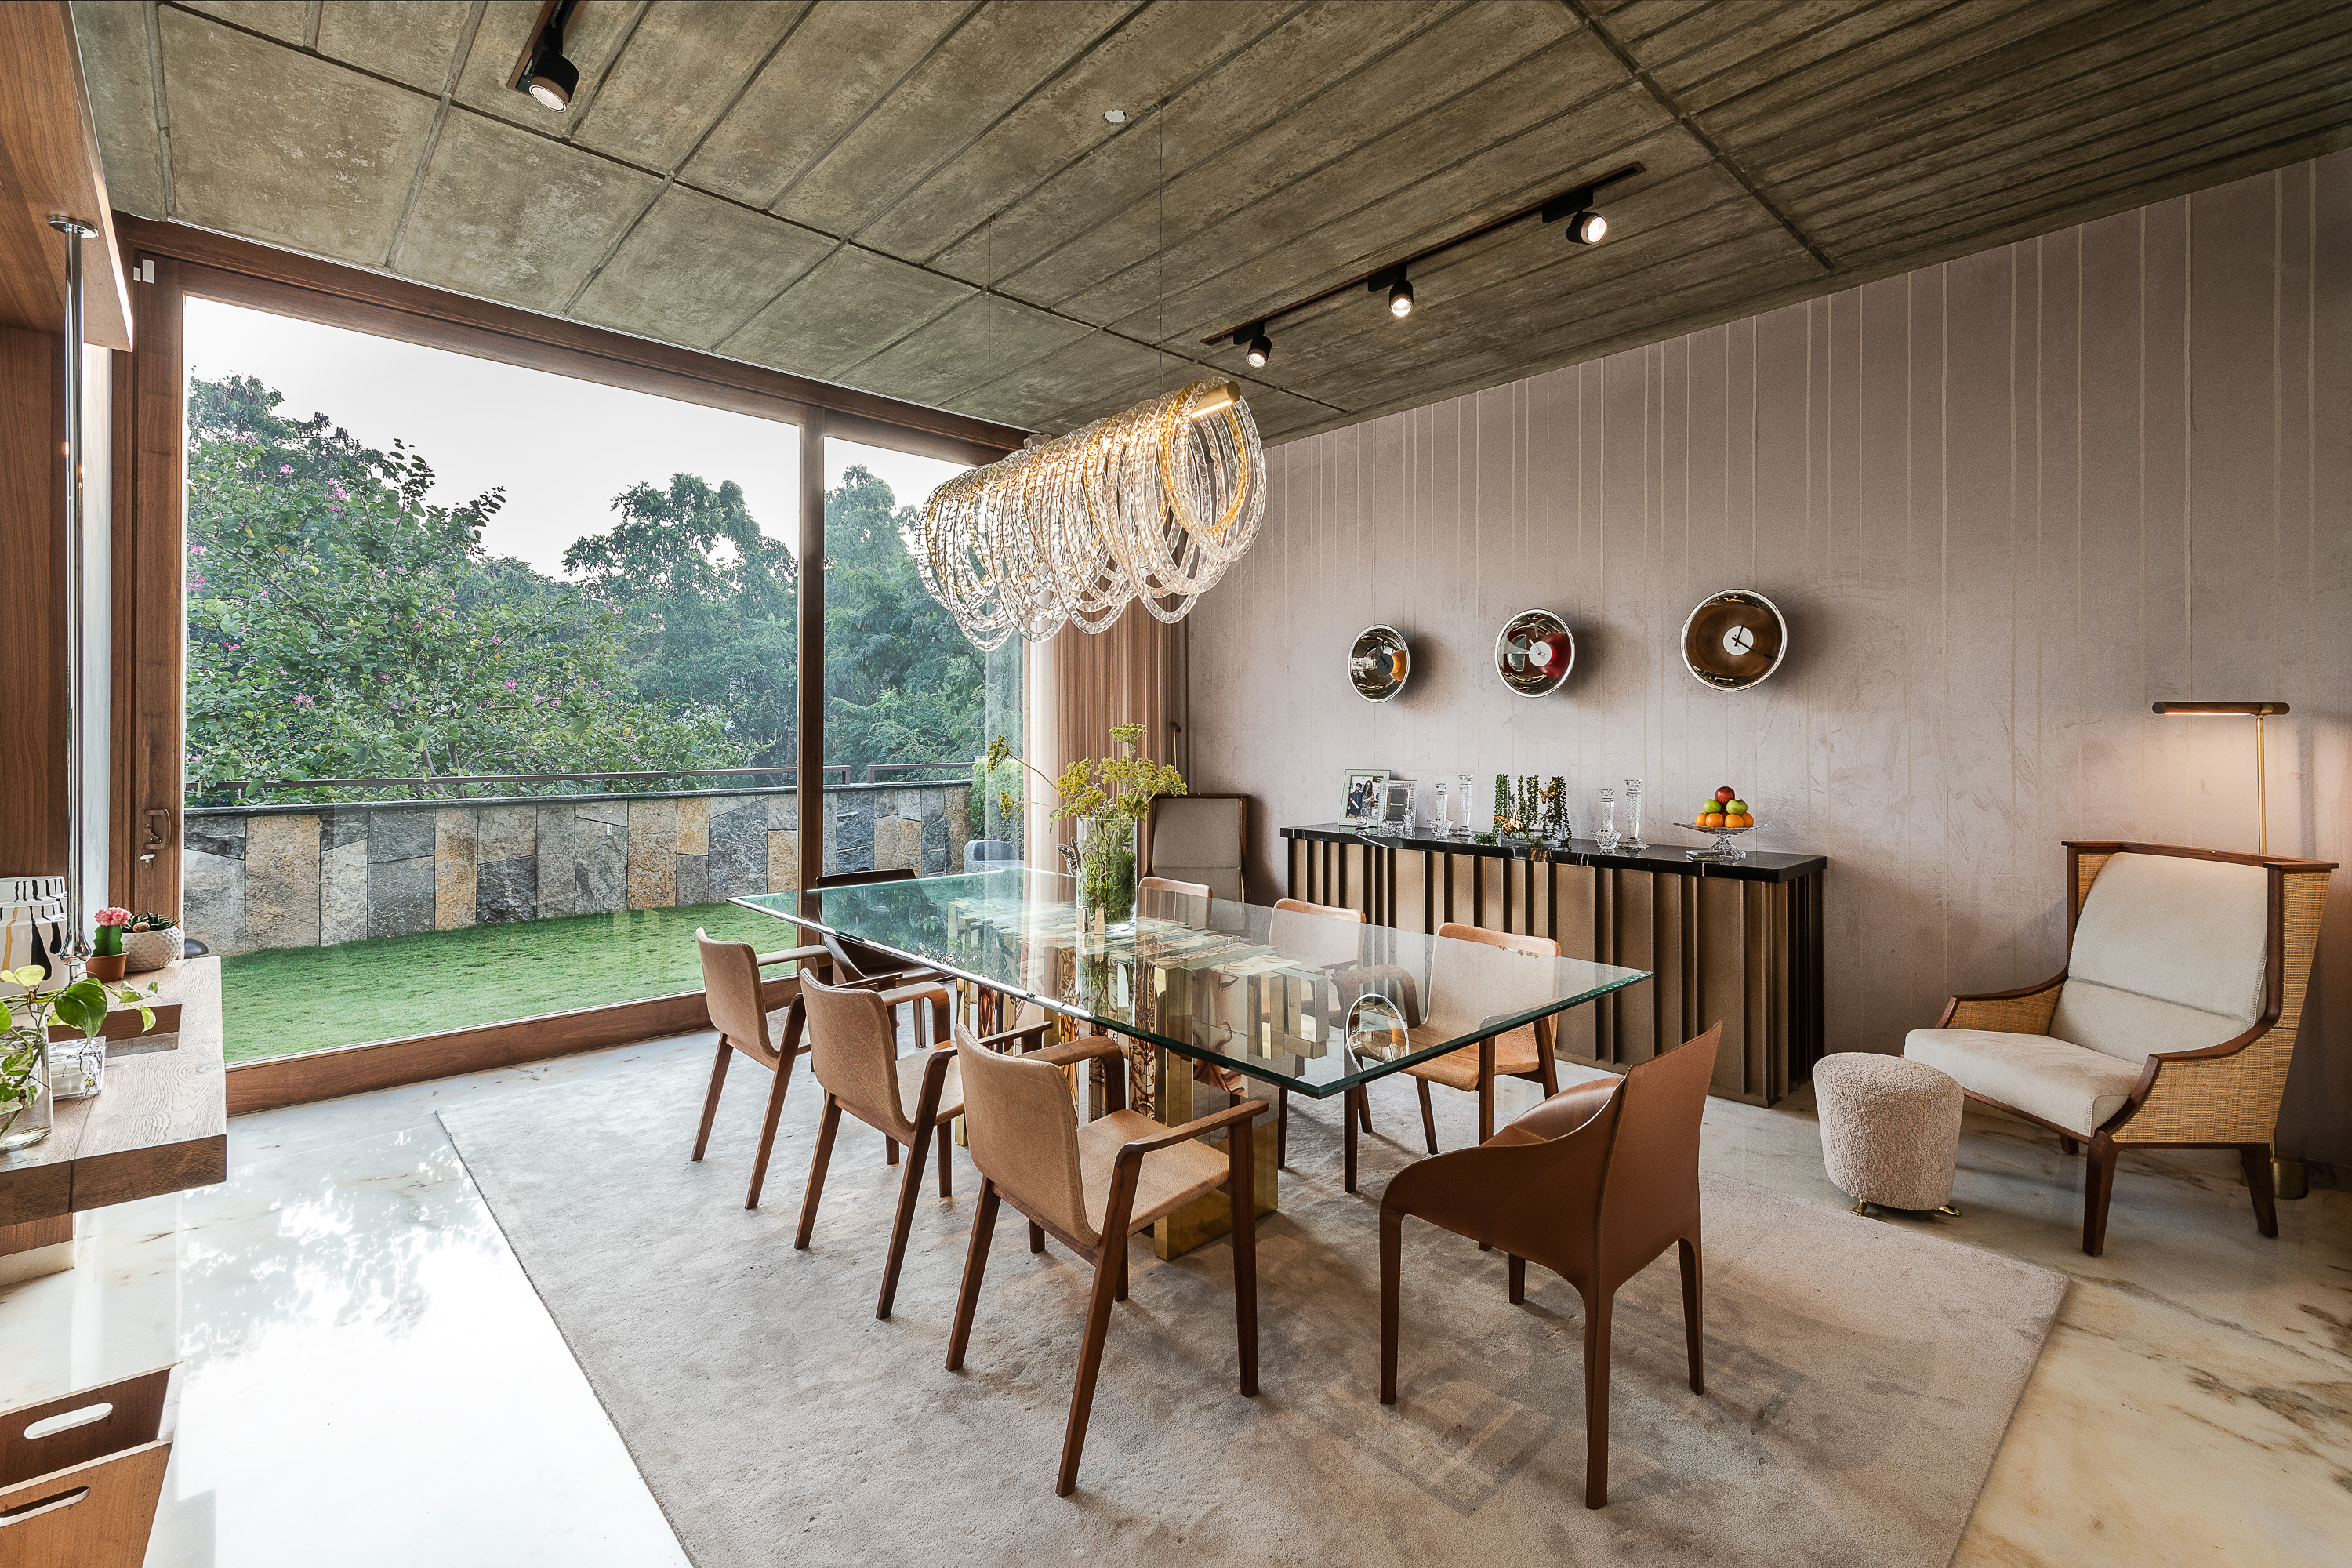 Sustainability Meets Luxury In This Private Residence by NA Architects (2) na architects NA Architects Design A Private Residence Where Copper Hues Reign Sustainability Meets Luxury In This Private Residence by NA Architects 2